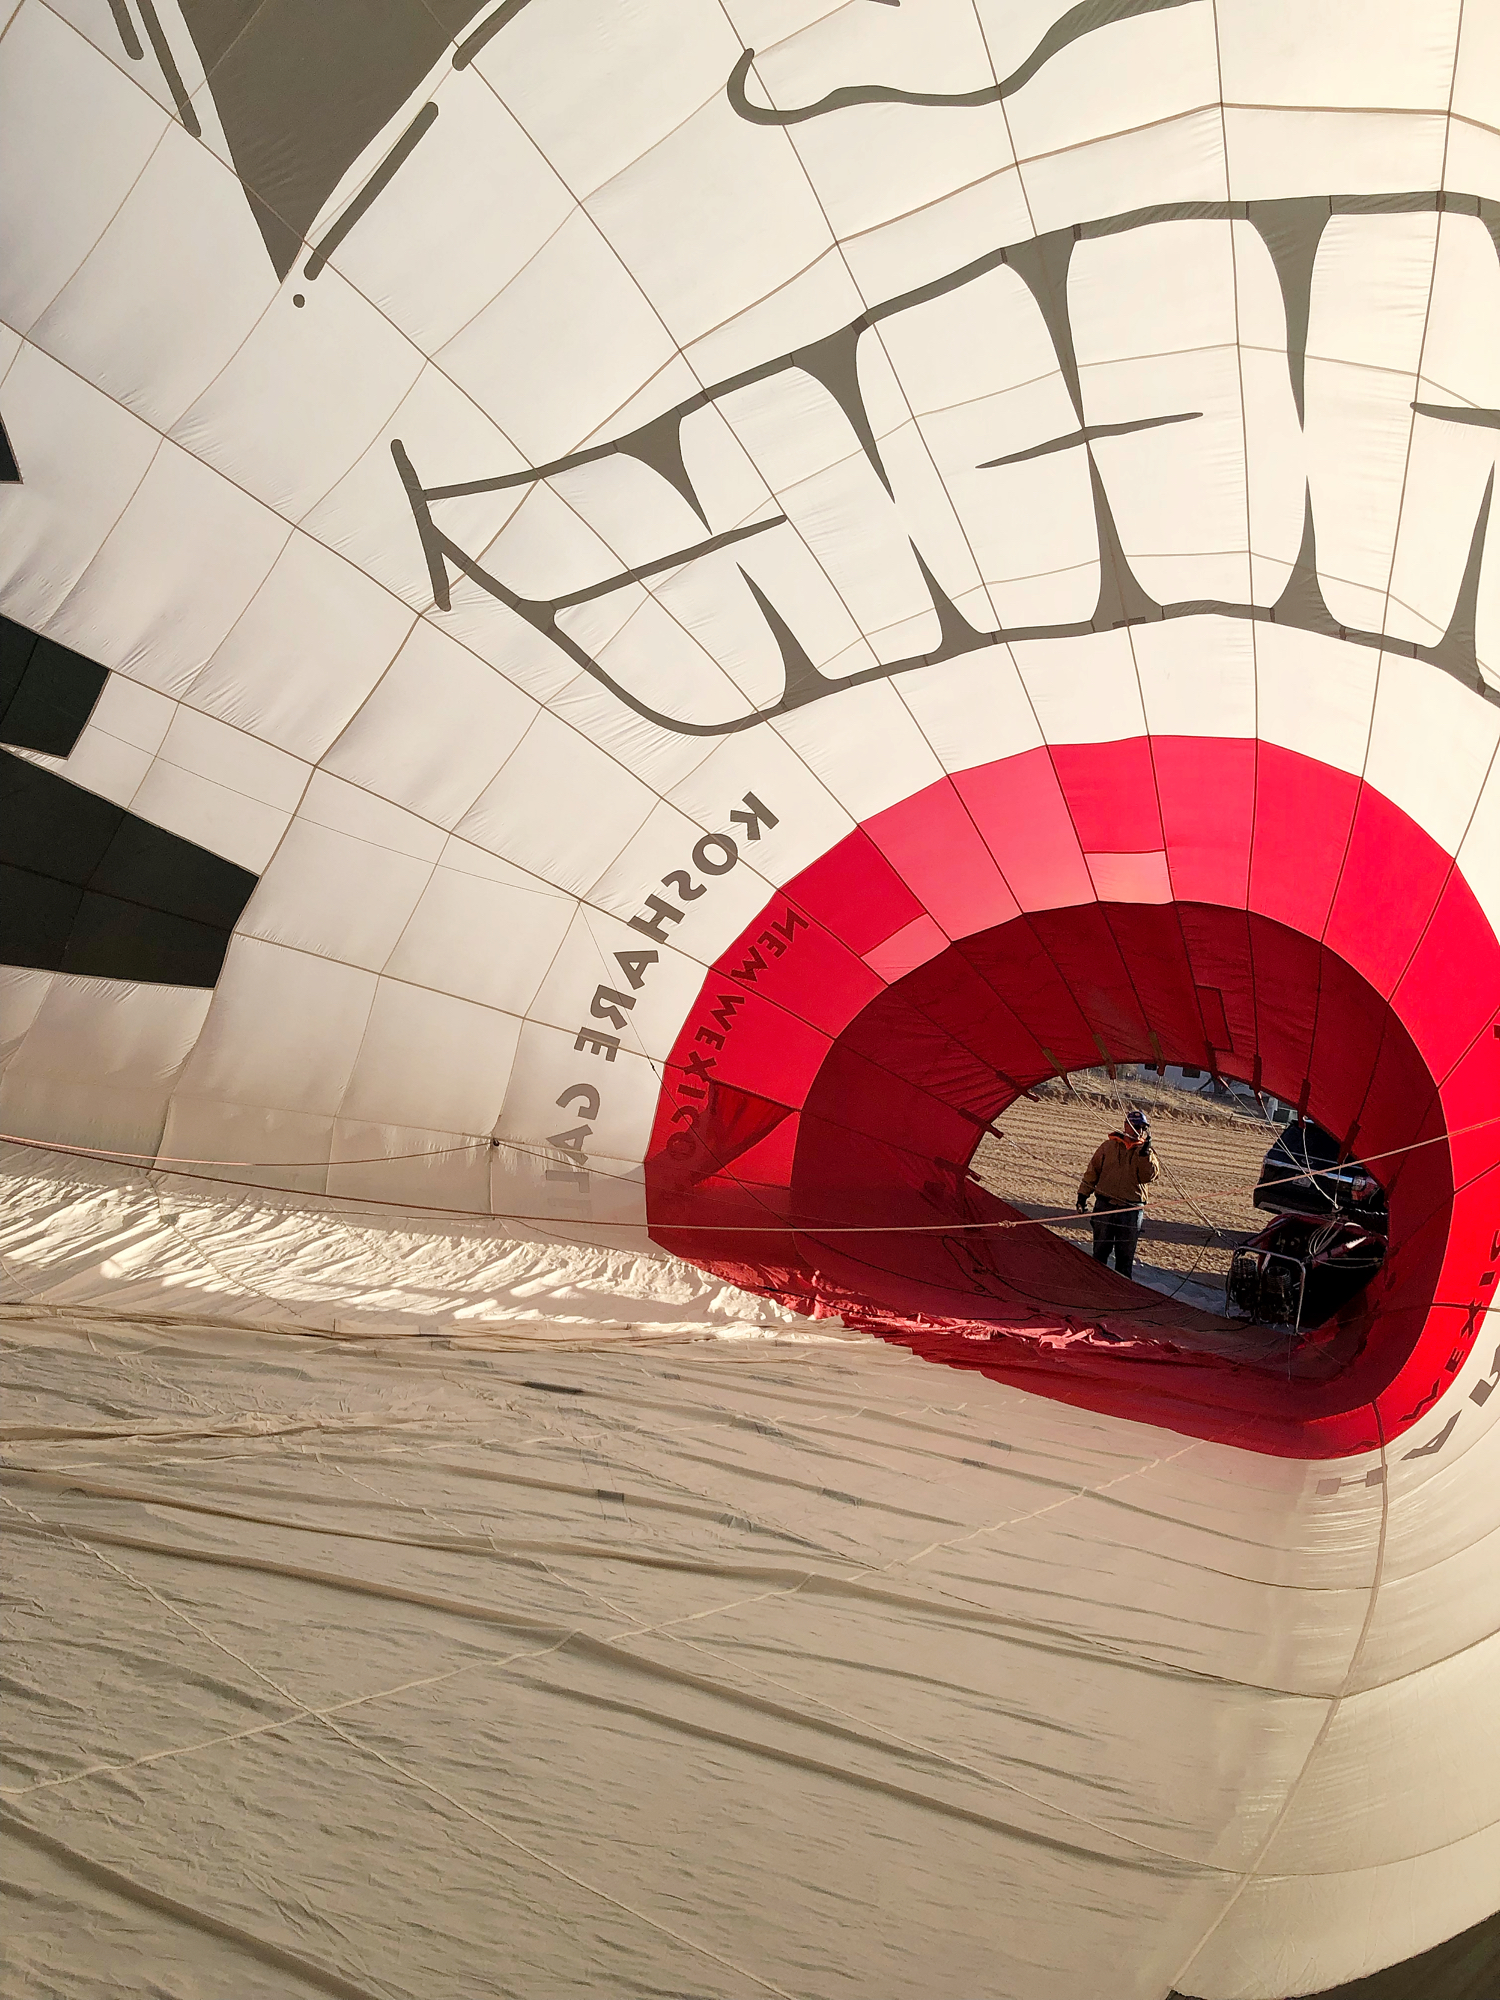 inside view of the hot air balloon